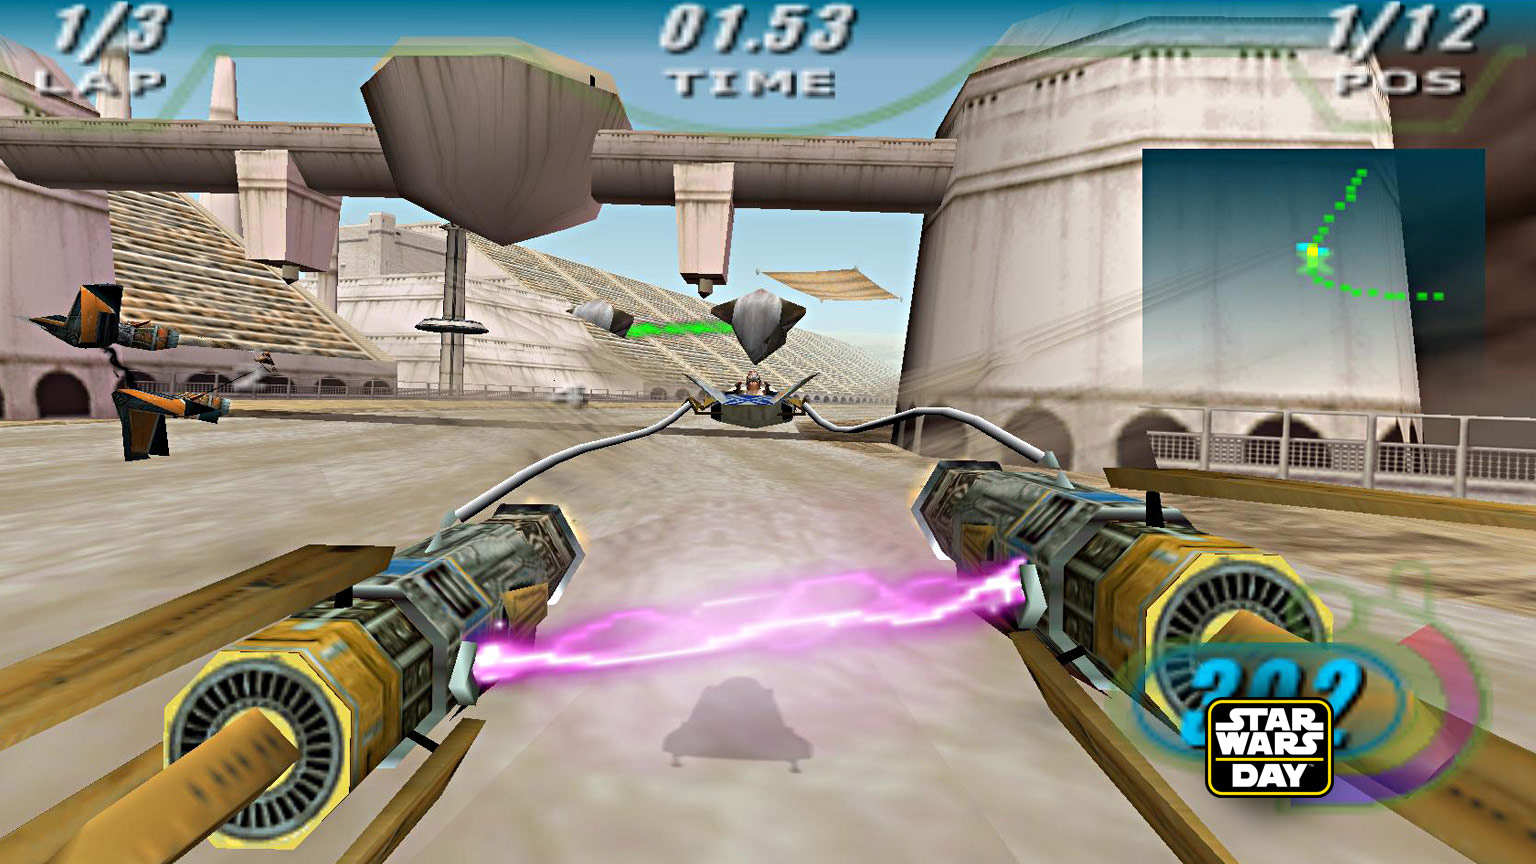 Star Wars Episode I Racer screenshot.